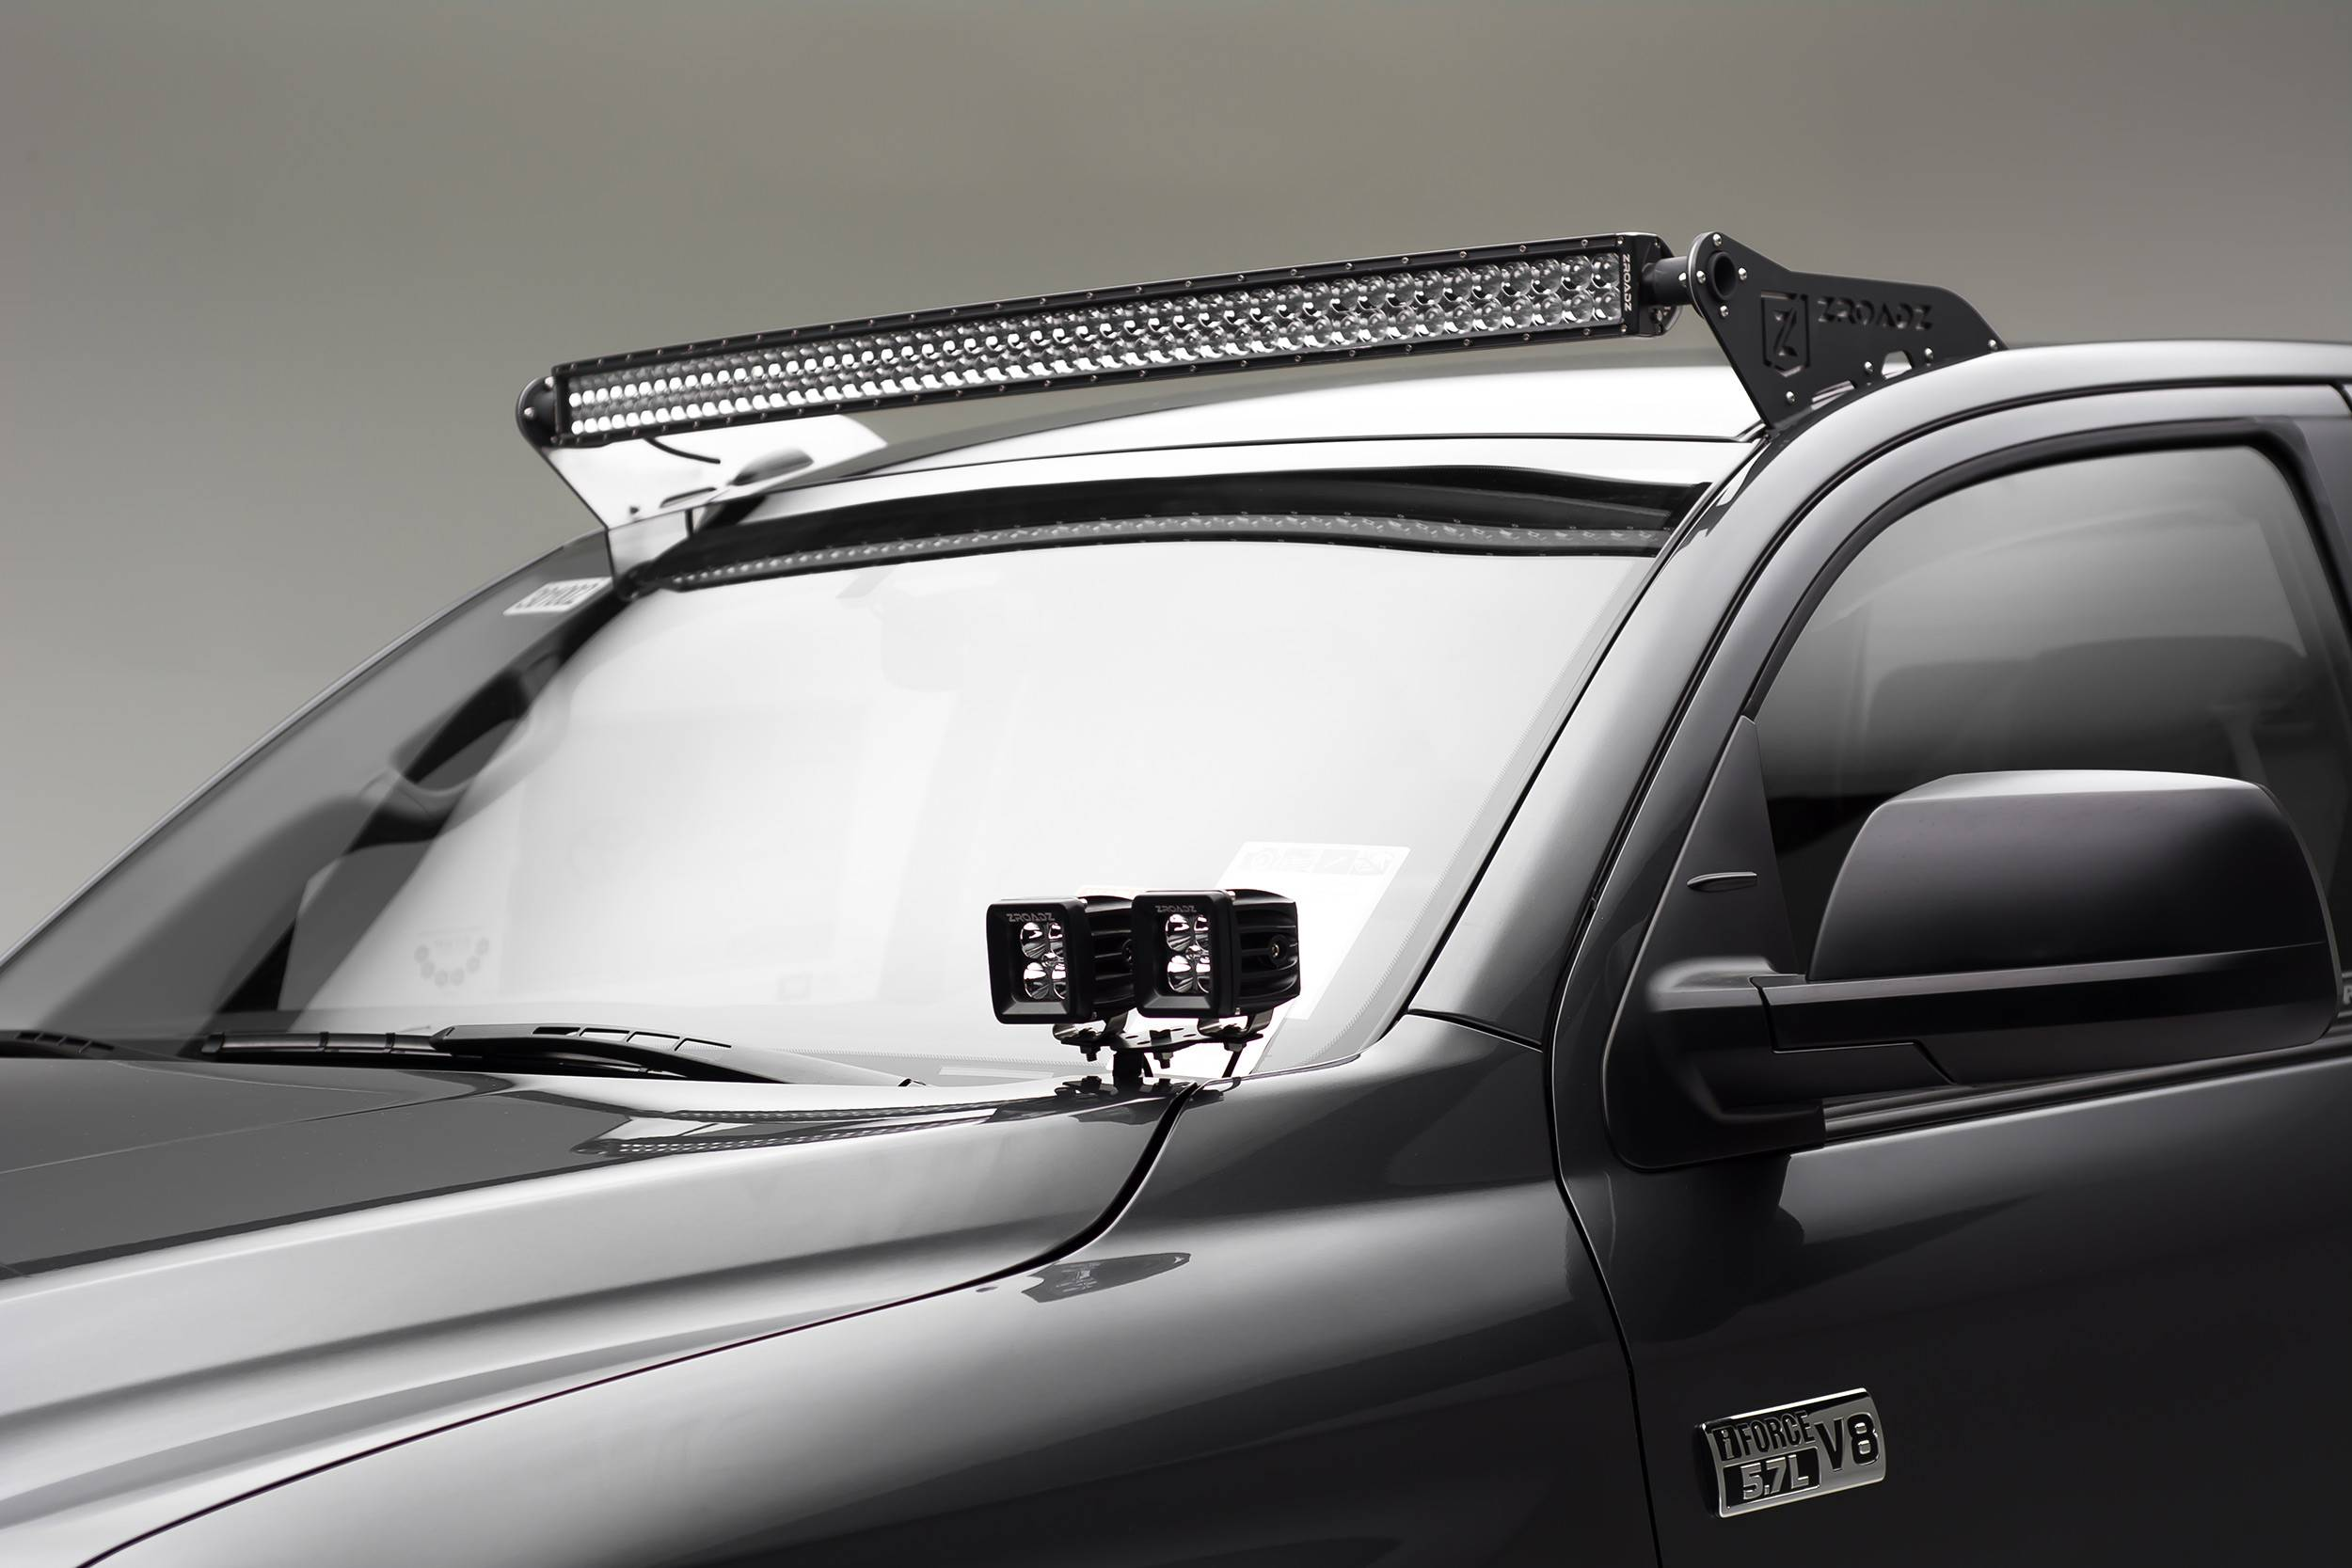 2007 2019 Toyota Tundra Front Roof Led Bracket To Mount 1 50 Inch Curved Led Light Bar Pn Z339641